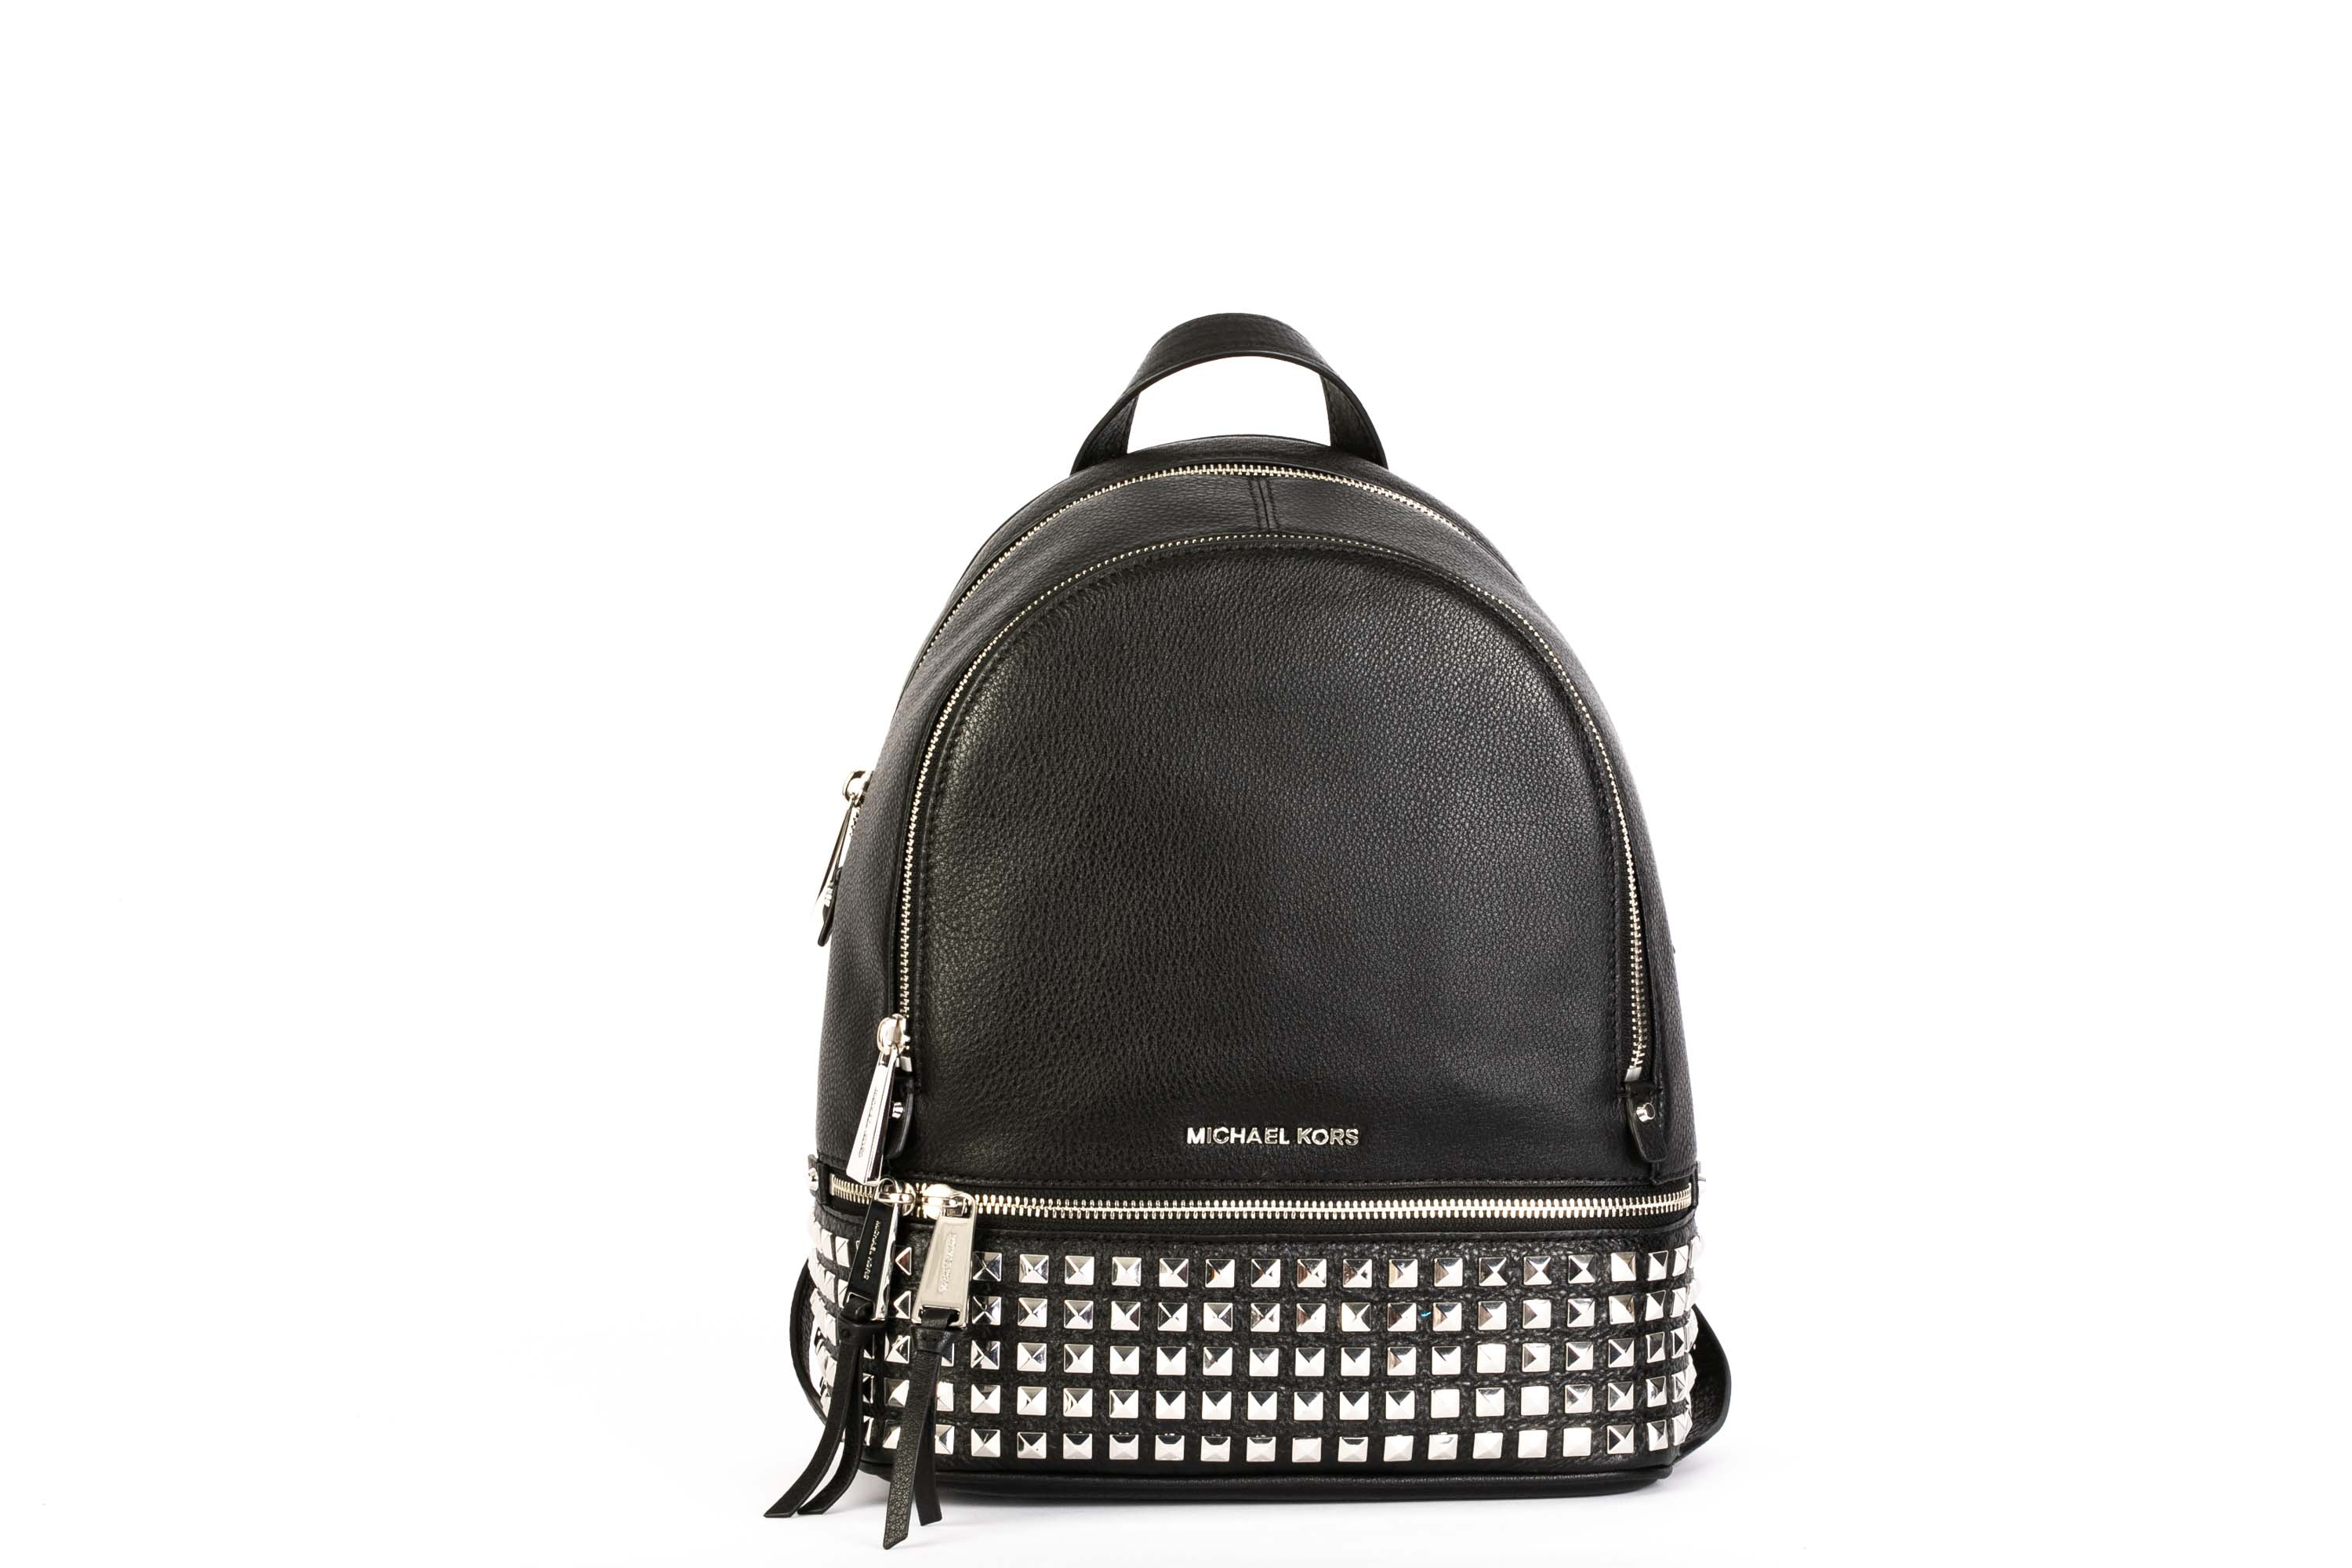 cf54404e10db MICHAEL KORS. LEATHER BACKPACK. articolo + ZOOM